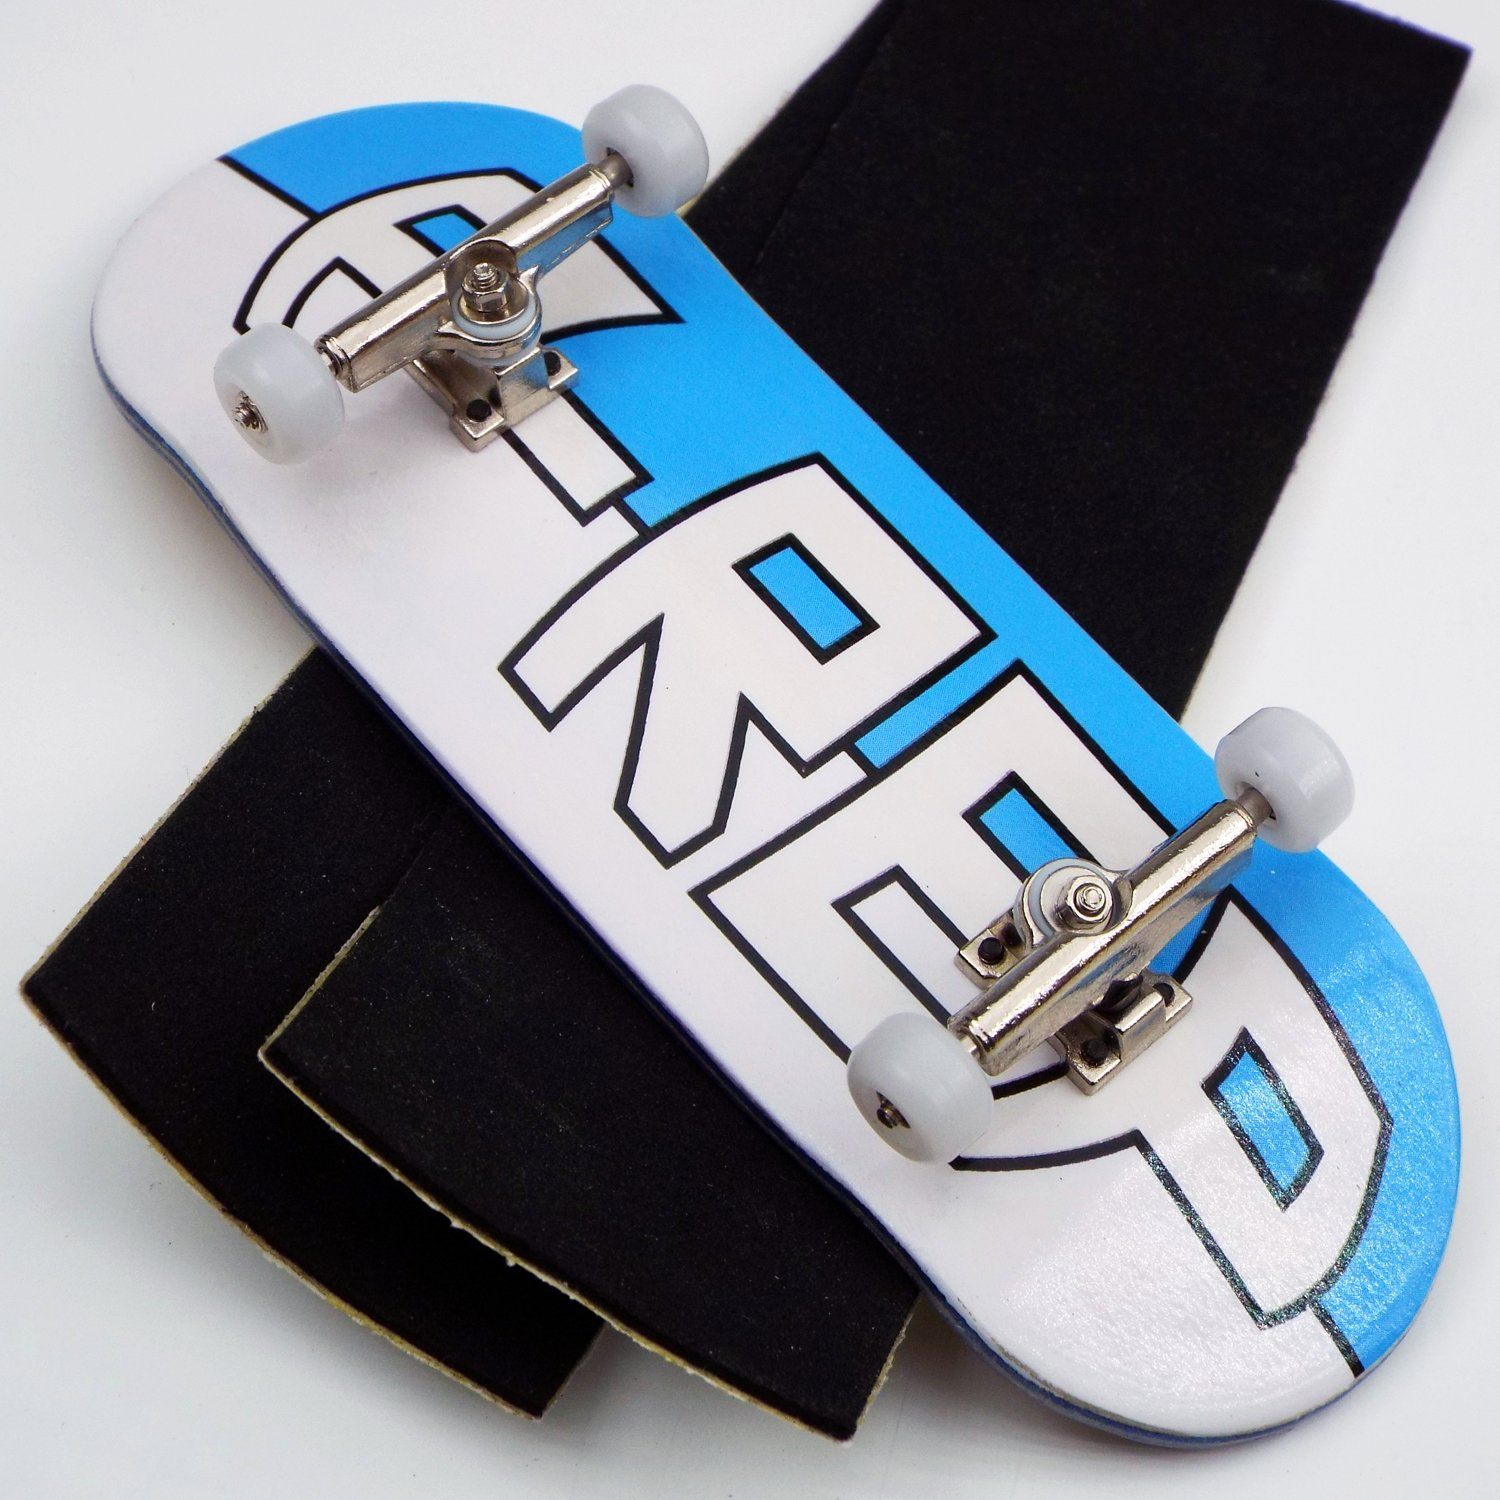 Peoples Republic P-Rep Large Logo 34mm Complete Wooden Fingerboard w CNC Lathed Bearing Wheels … by Peoples Republic (Image #1)